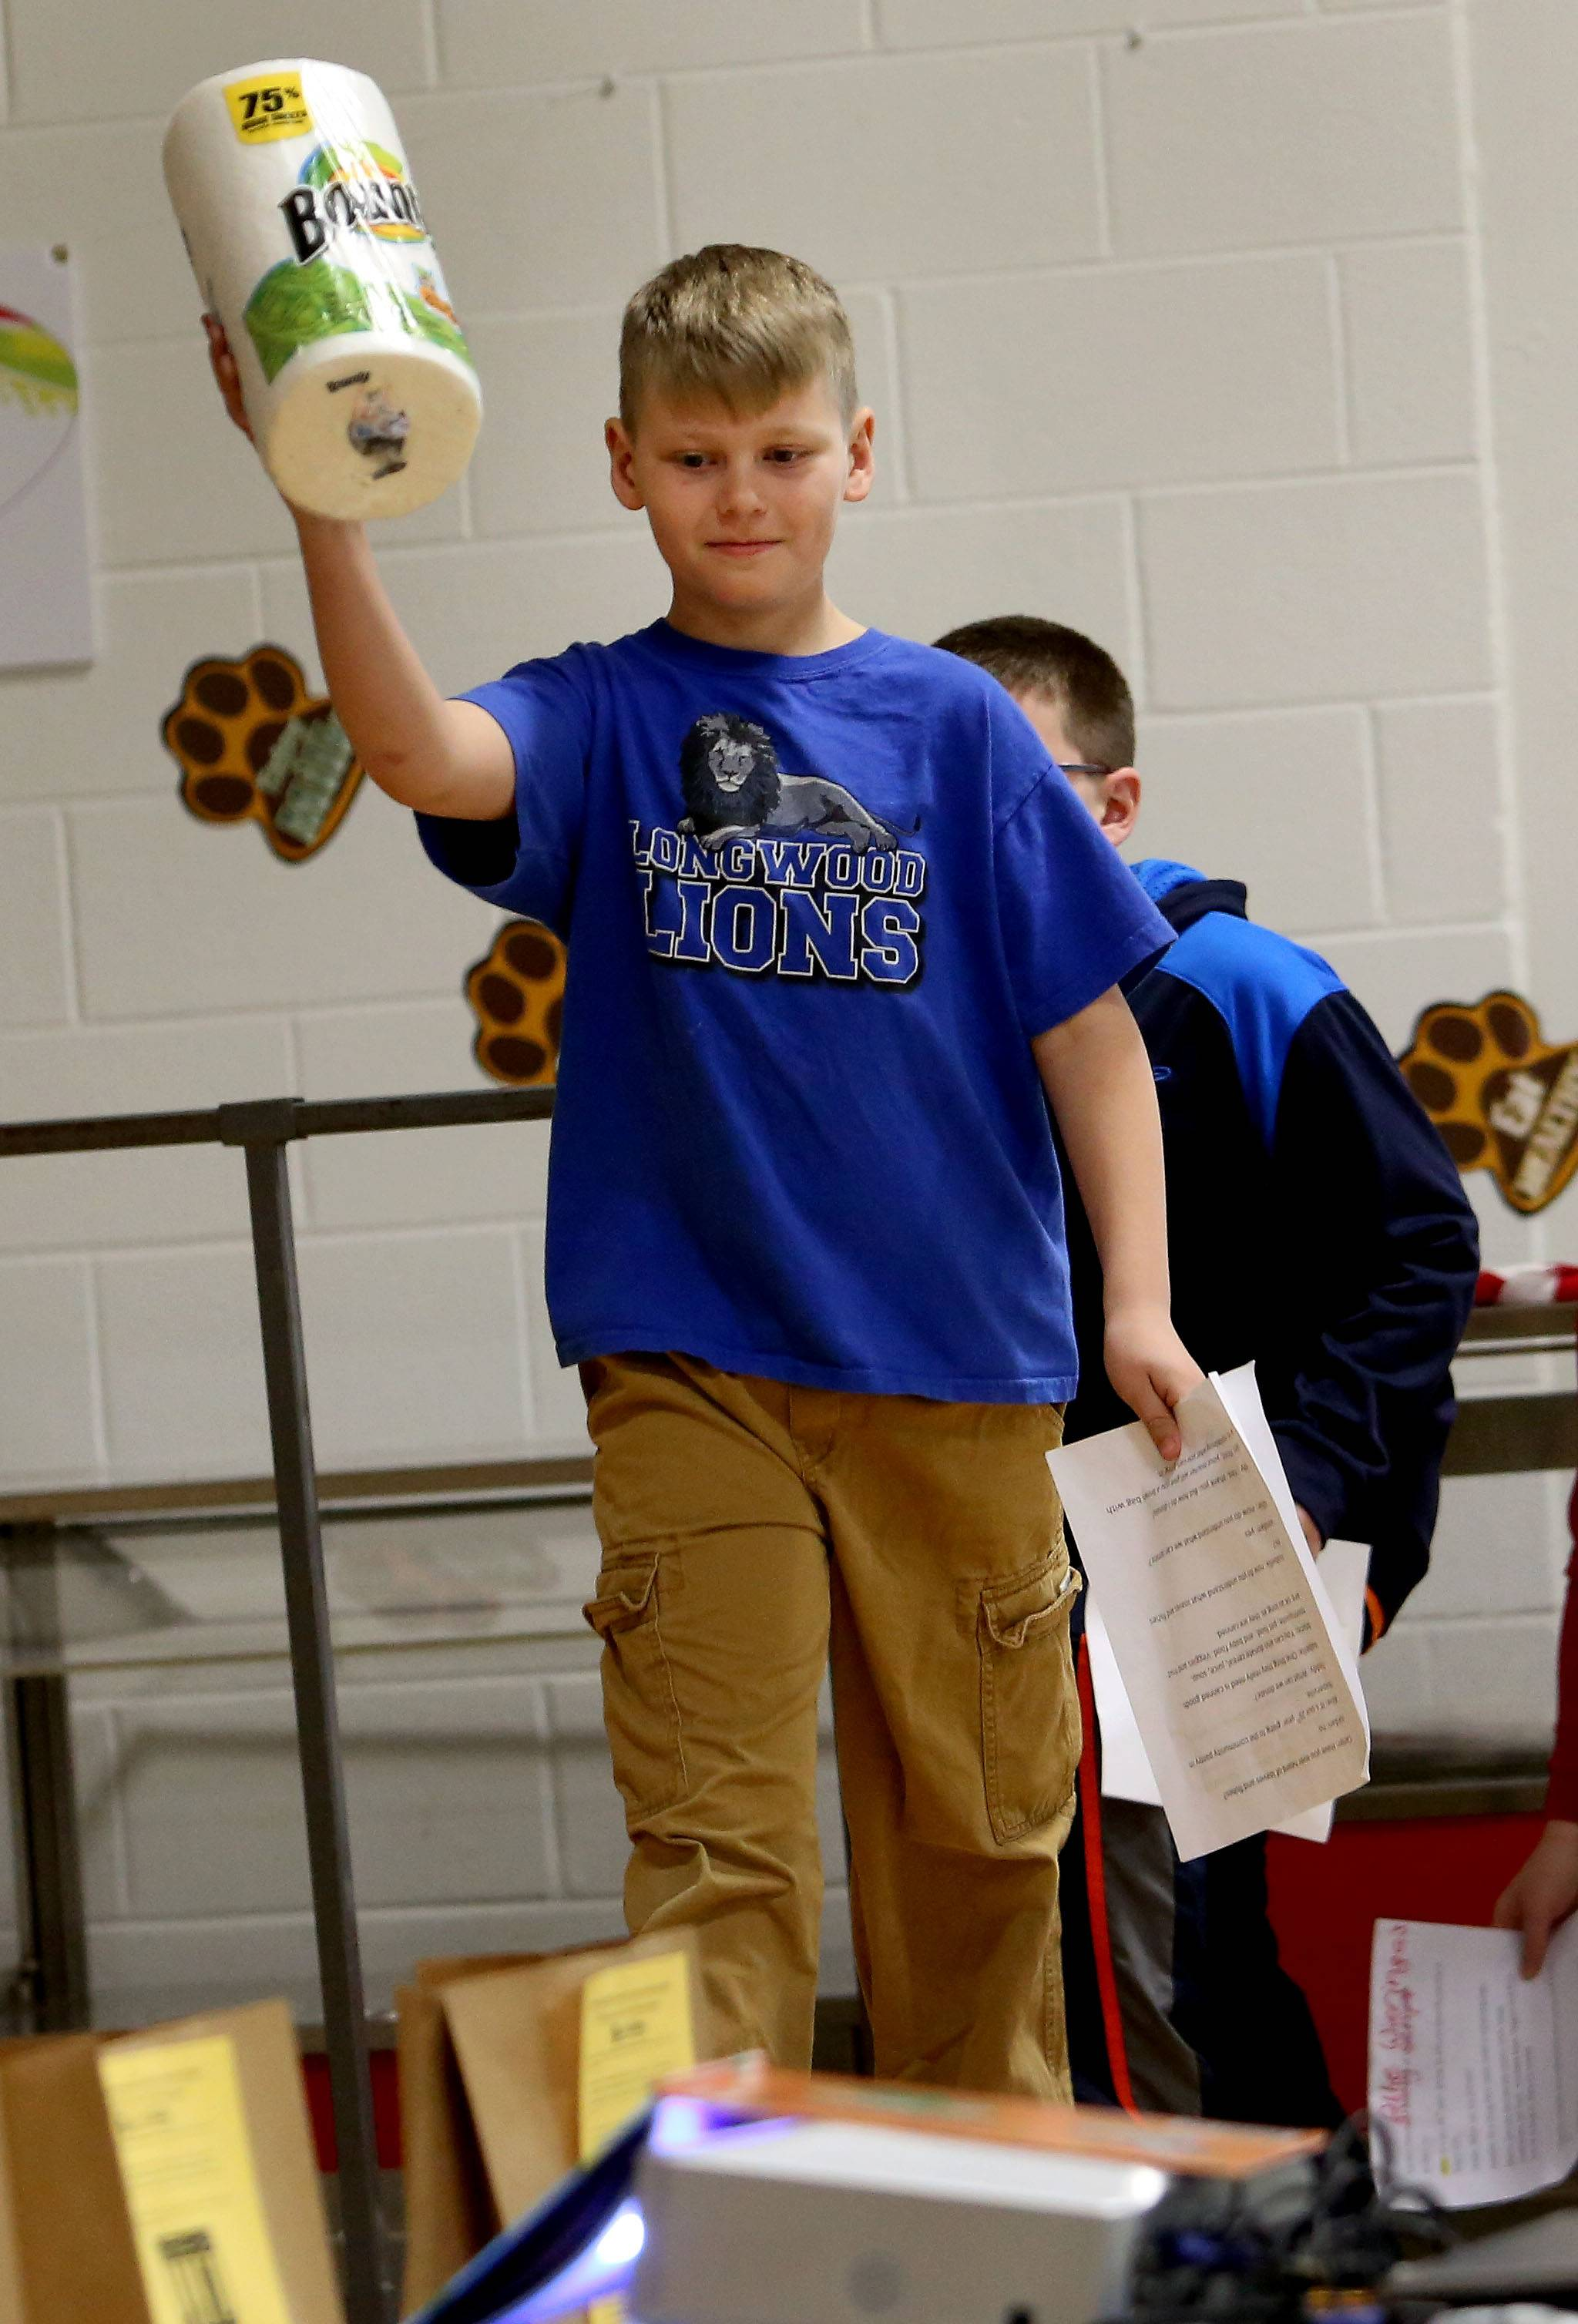 Fourth-grader Carter Burgoon, with the student council, leads the way with a pantry item as Longwood Elementary School in Naperville kicks off its 25th anniversary food drive for Loaves & Fishes Community Pantry.